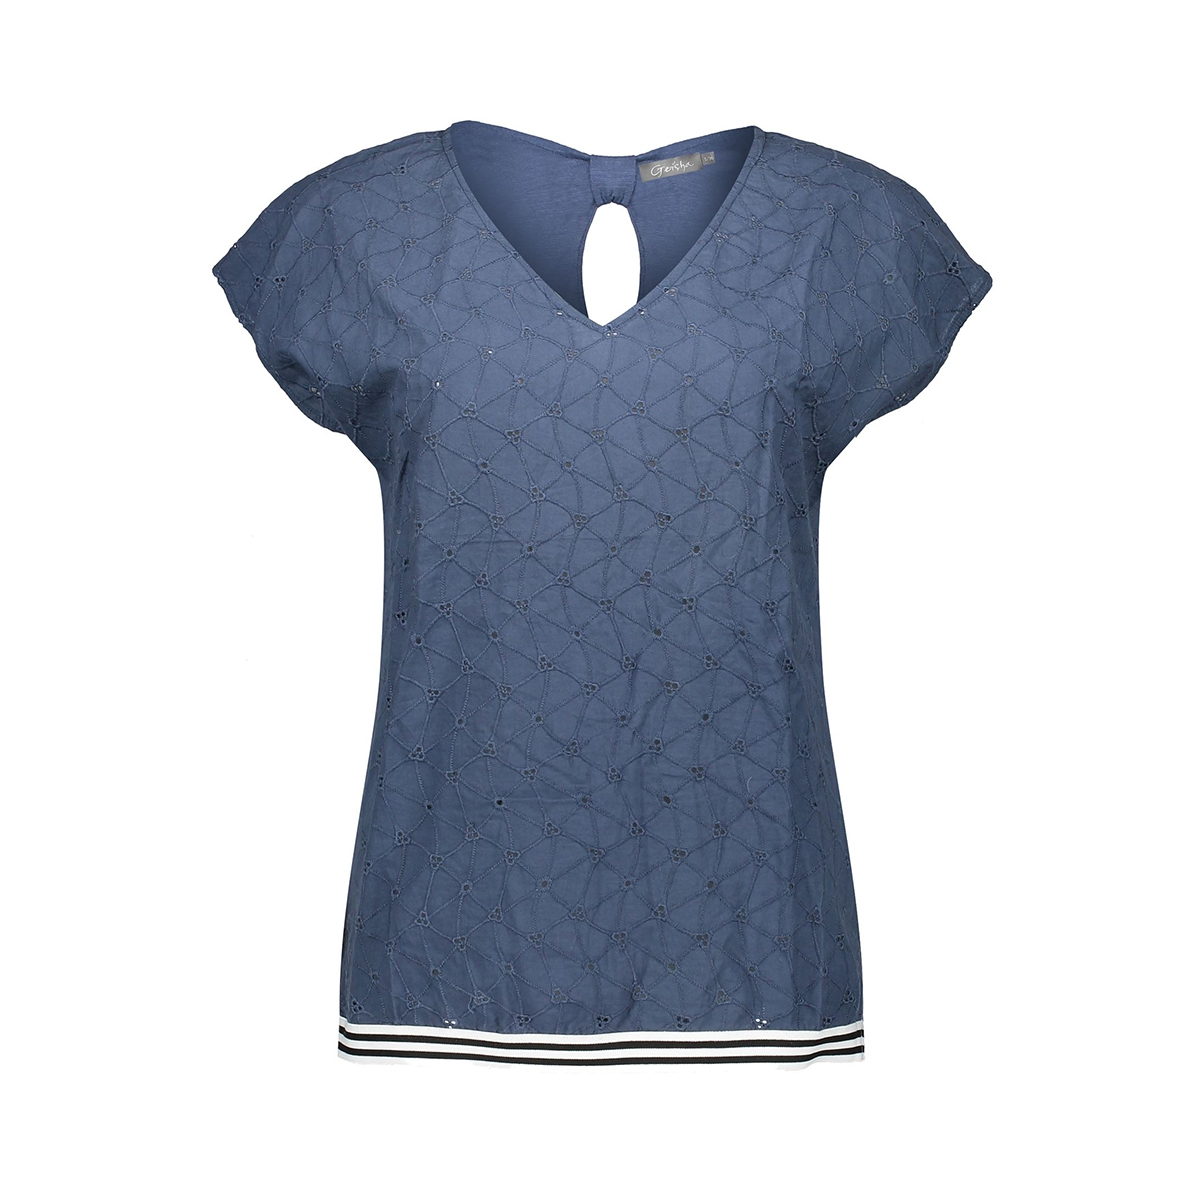 top embroidery and tape 03074 85 geisha t-shirt blue